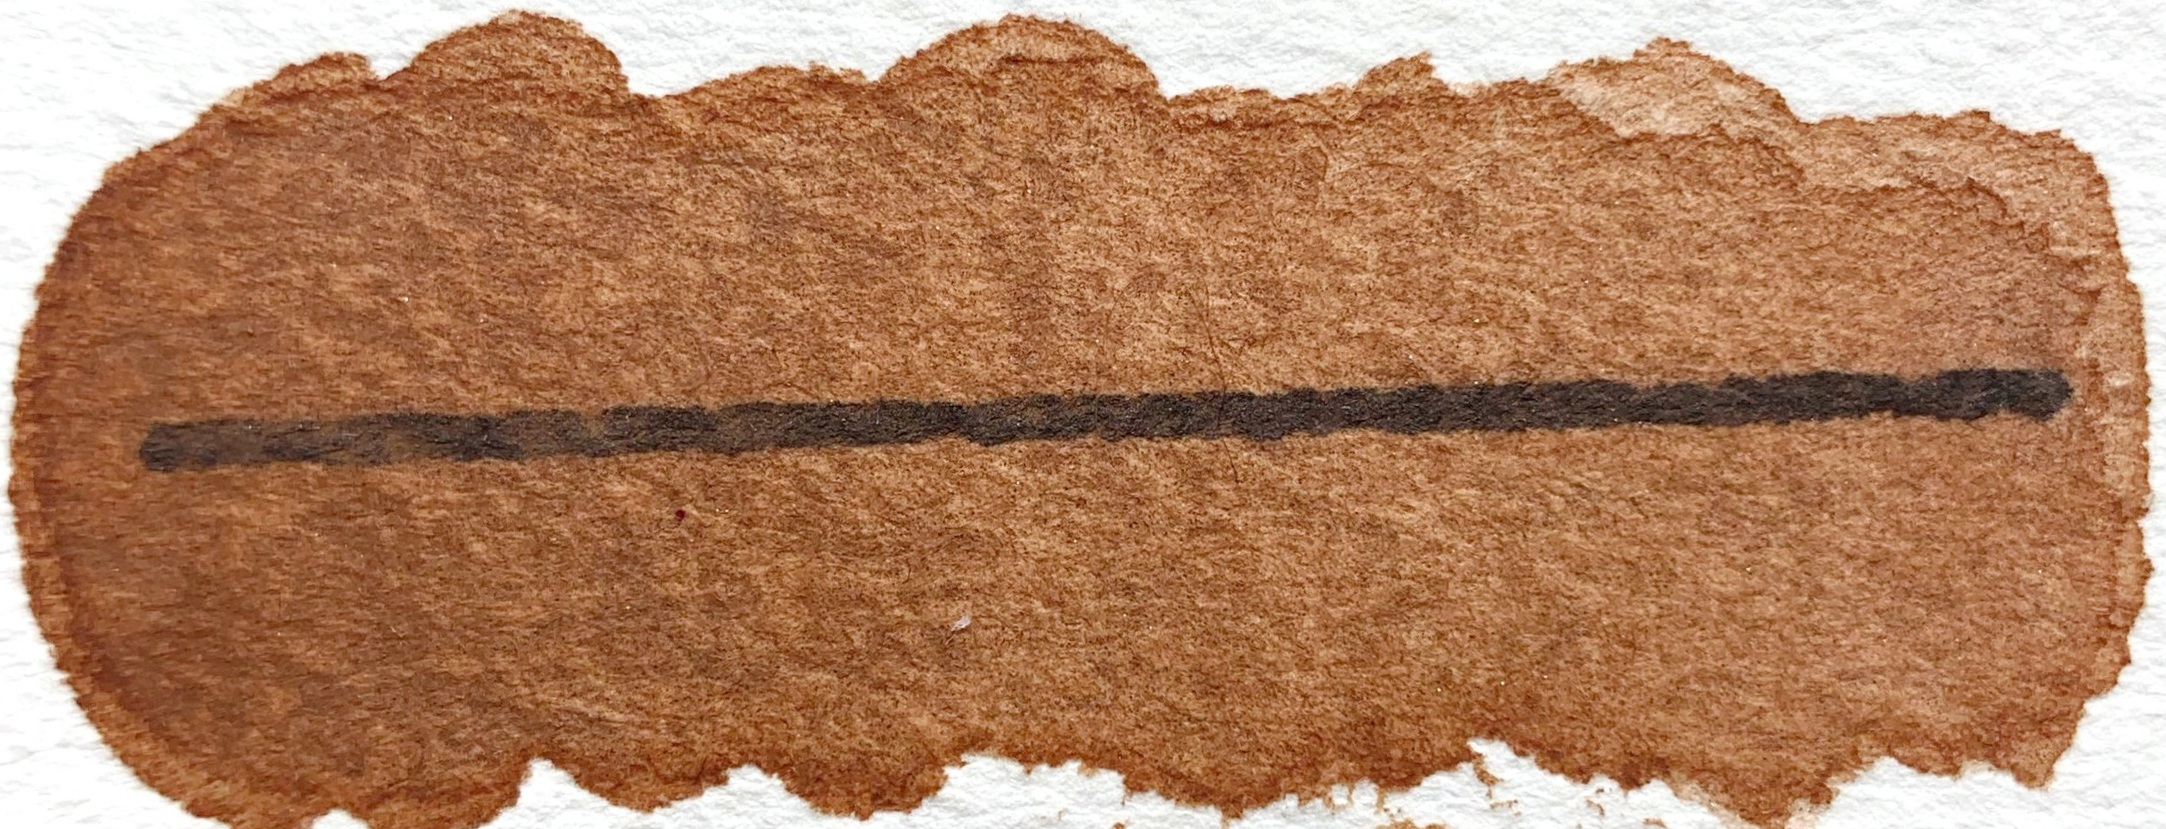 Boot Scootin' Brown - Mineral pigment, semitransparent, excellent lightfastness, moderately staining